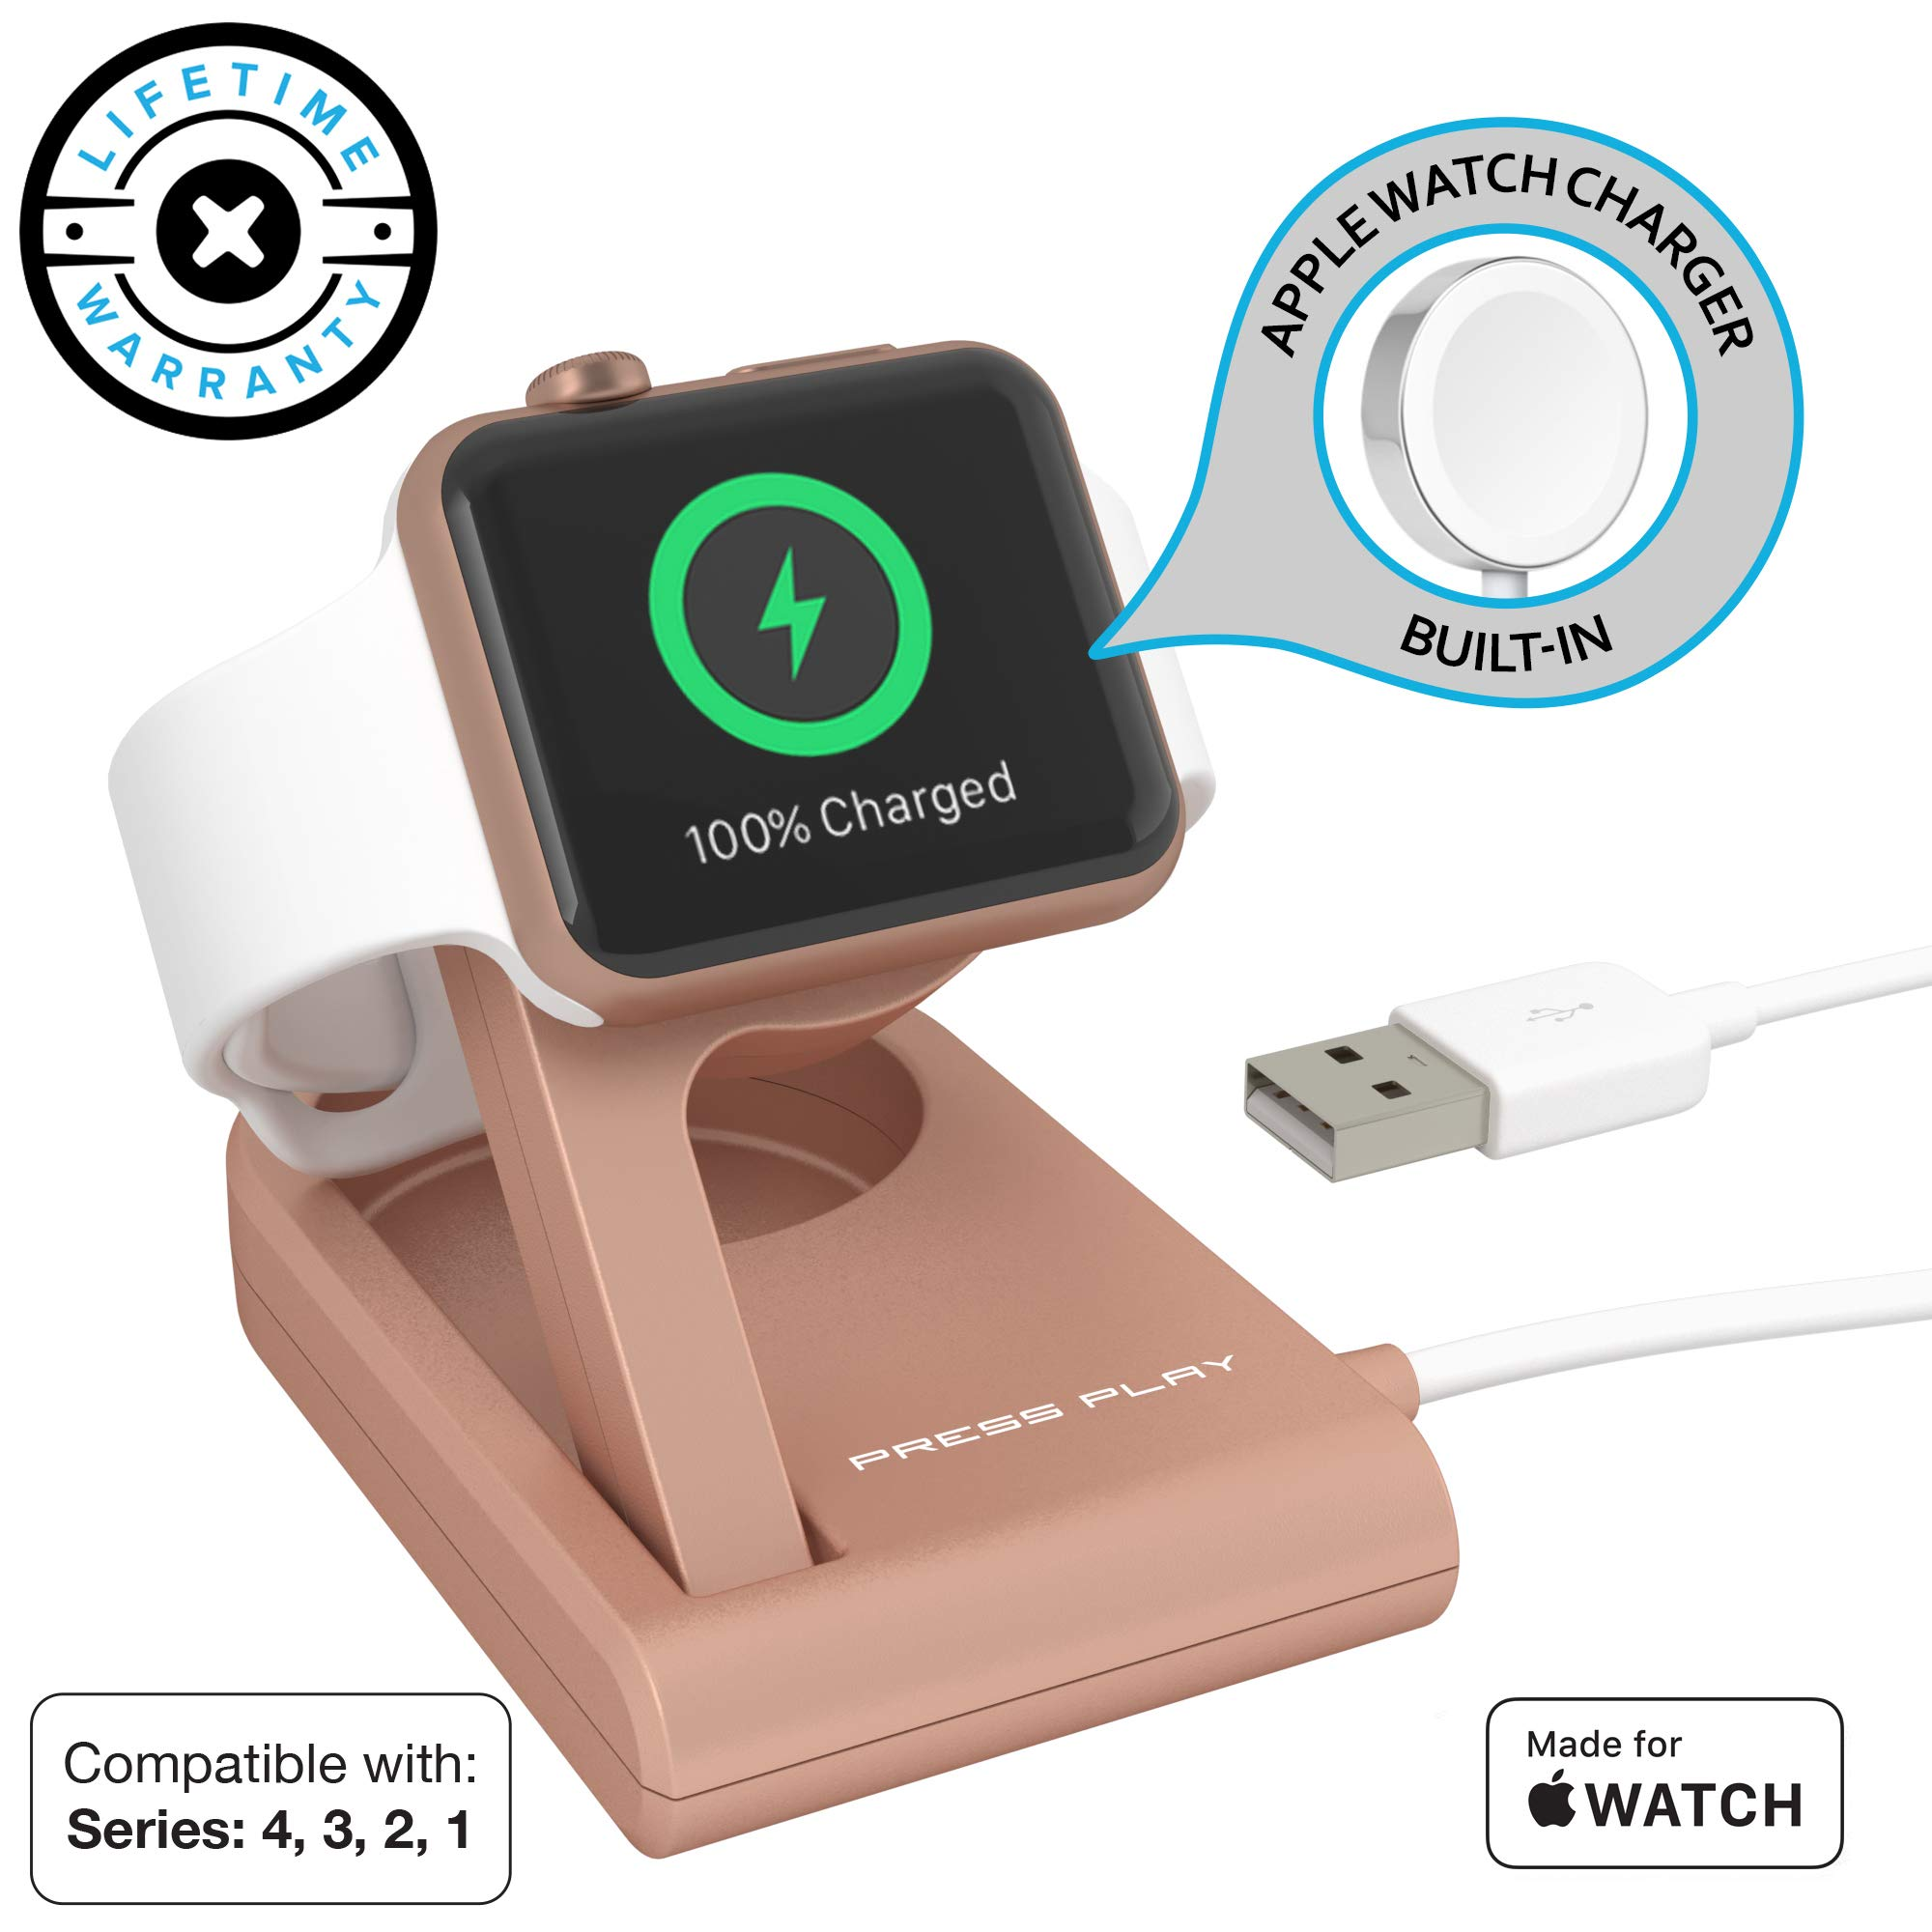 Apple Watch Charger (APPLE CERTIFIED) ONE Dock SOLO, Built-in Original Magnetic Charging Puck Cable + Adjustable Stand for 38mm/40mm/42mm/44mm Apple Watch Series 1, 2, 3, 4 (Rose Gold) by Press Play